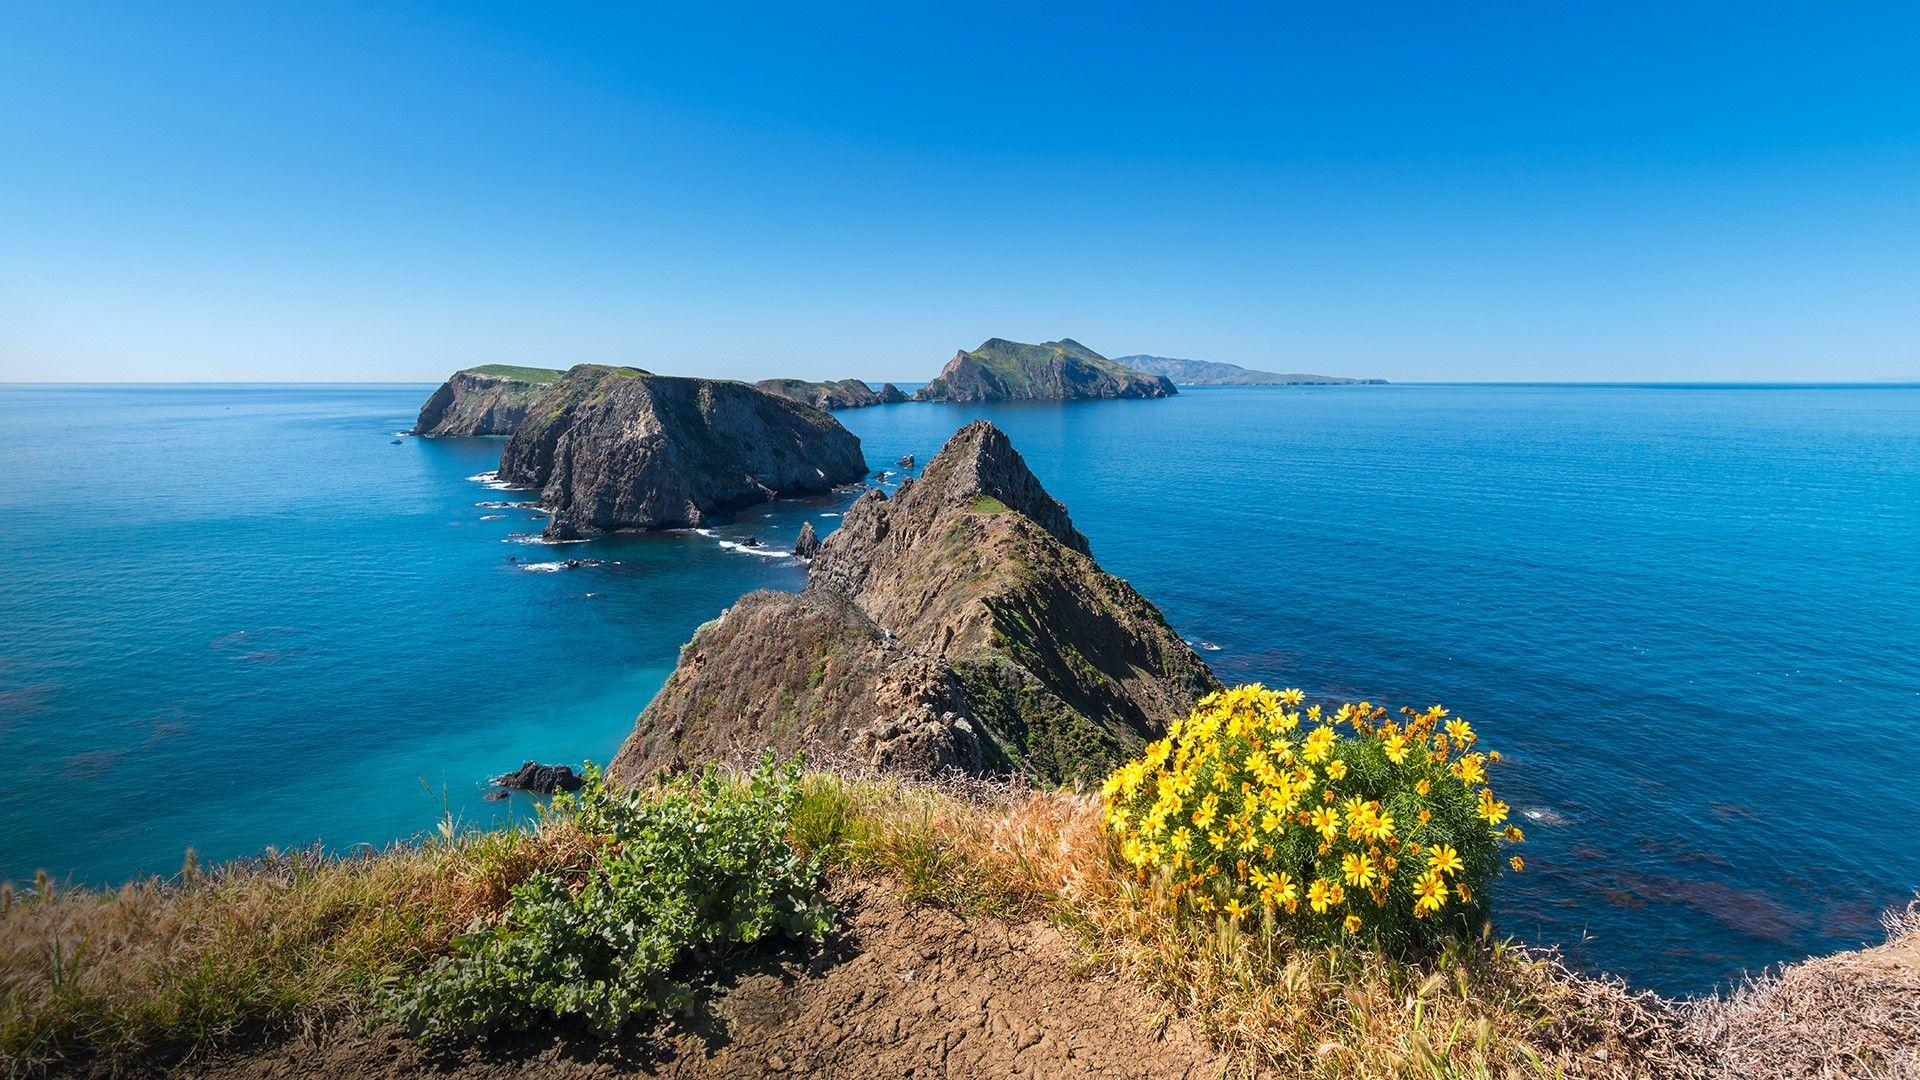 Channel Islands National Park, near Los Angeles, California, USA